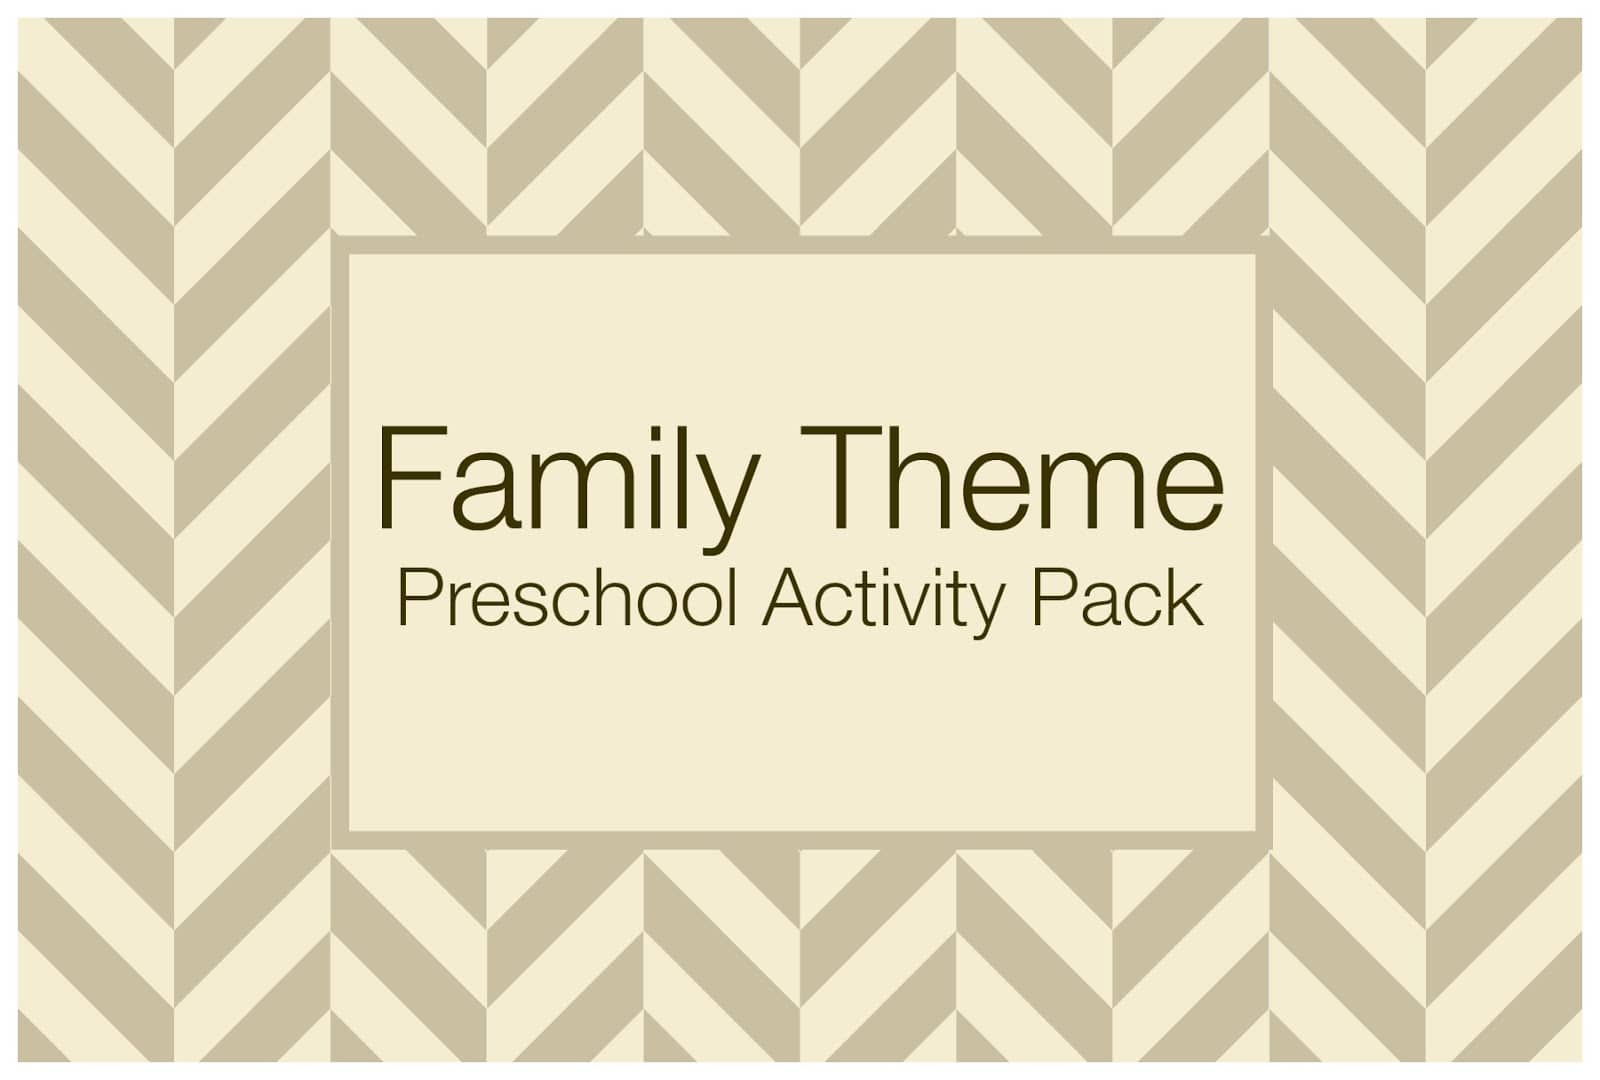 Family Theme Preschool Activities Tips And Tricks For